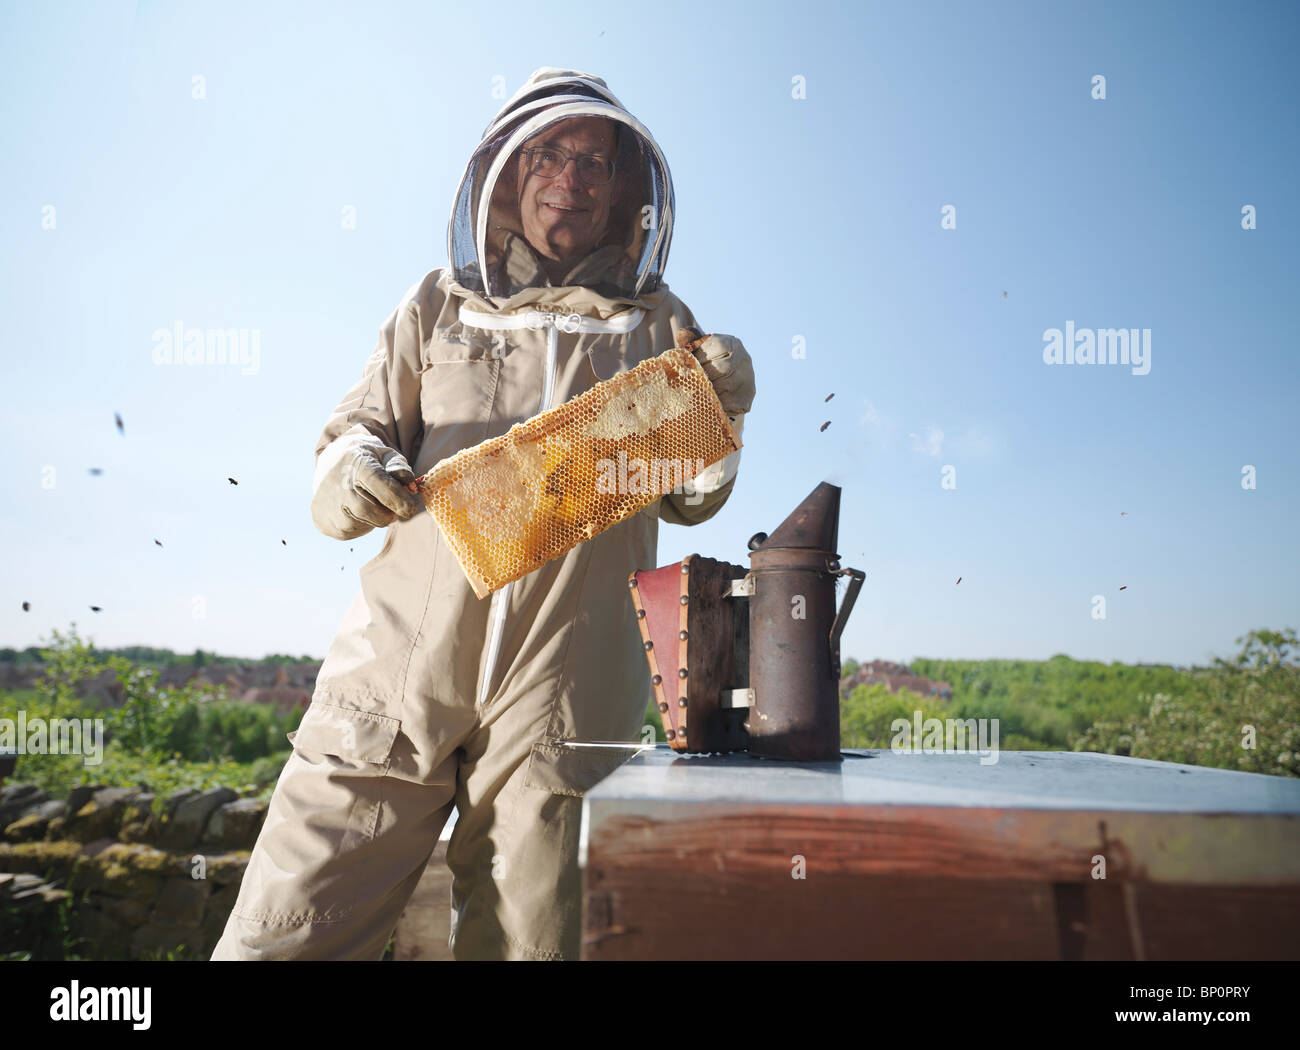 Beekeeper with honey comb and smoker - Stock Image